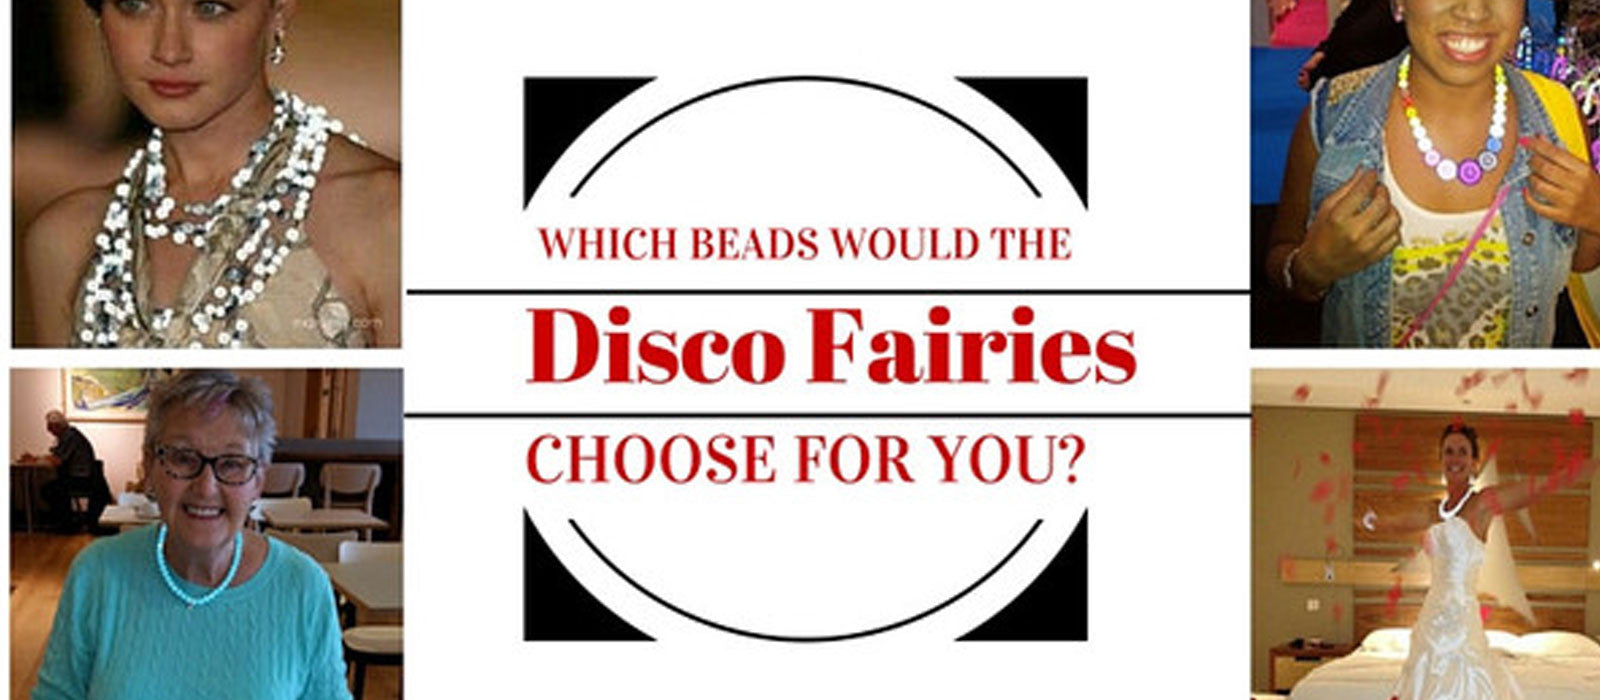 Which Beads Would the Disco Fairies choose for You?